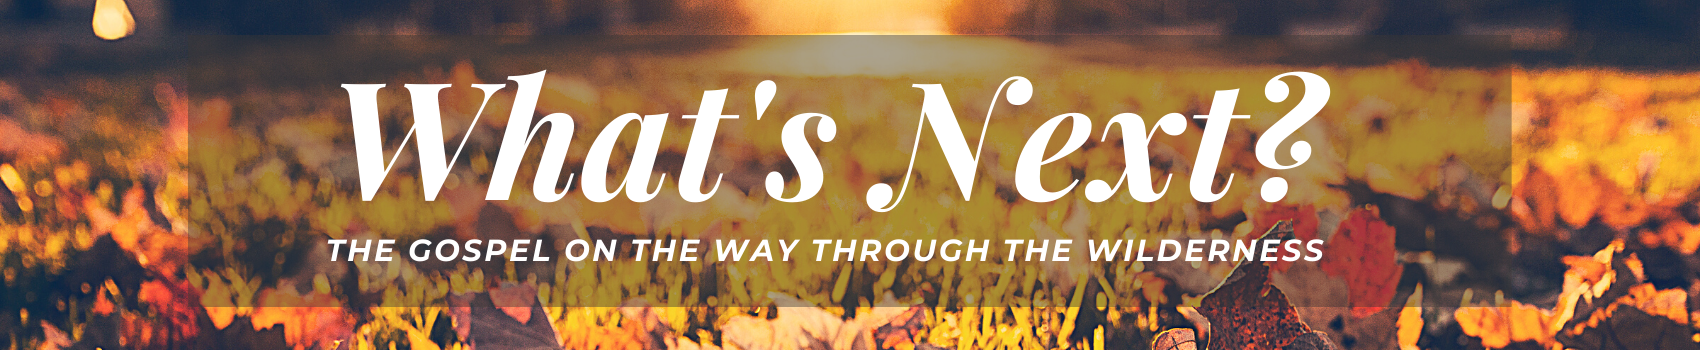 What's Next? Sermon Series